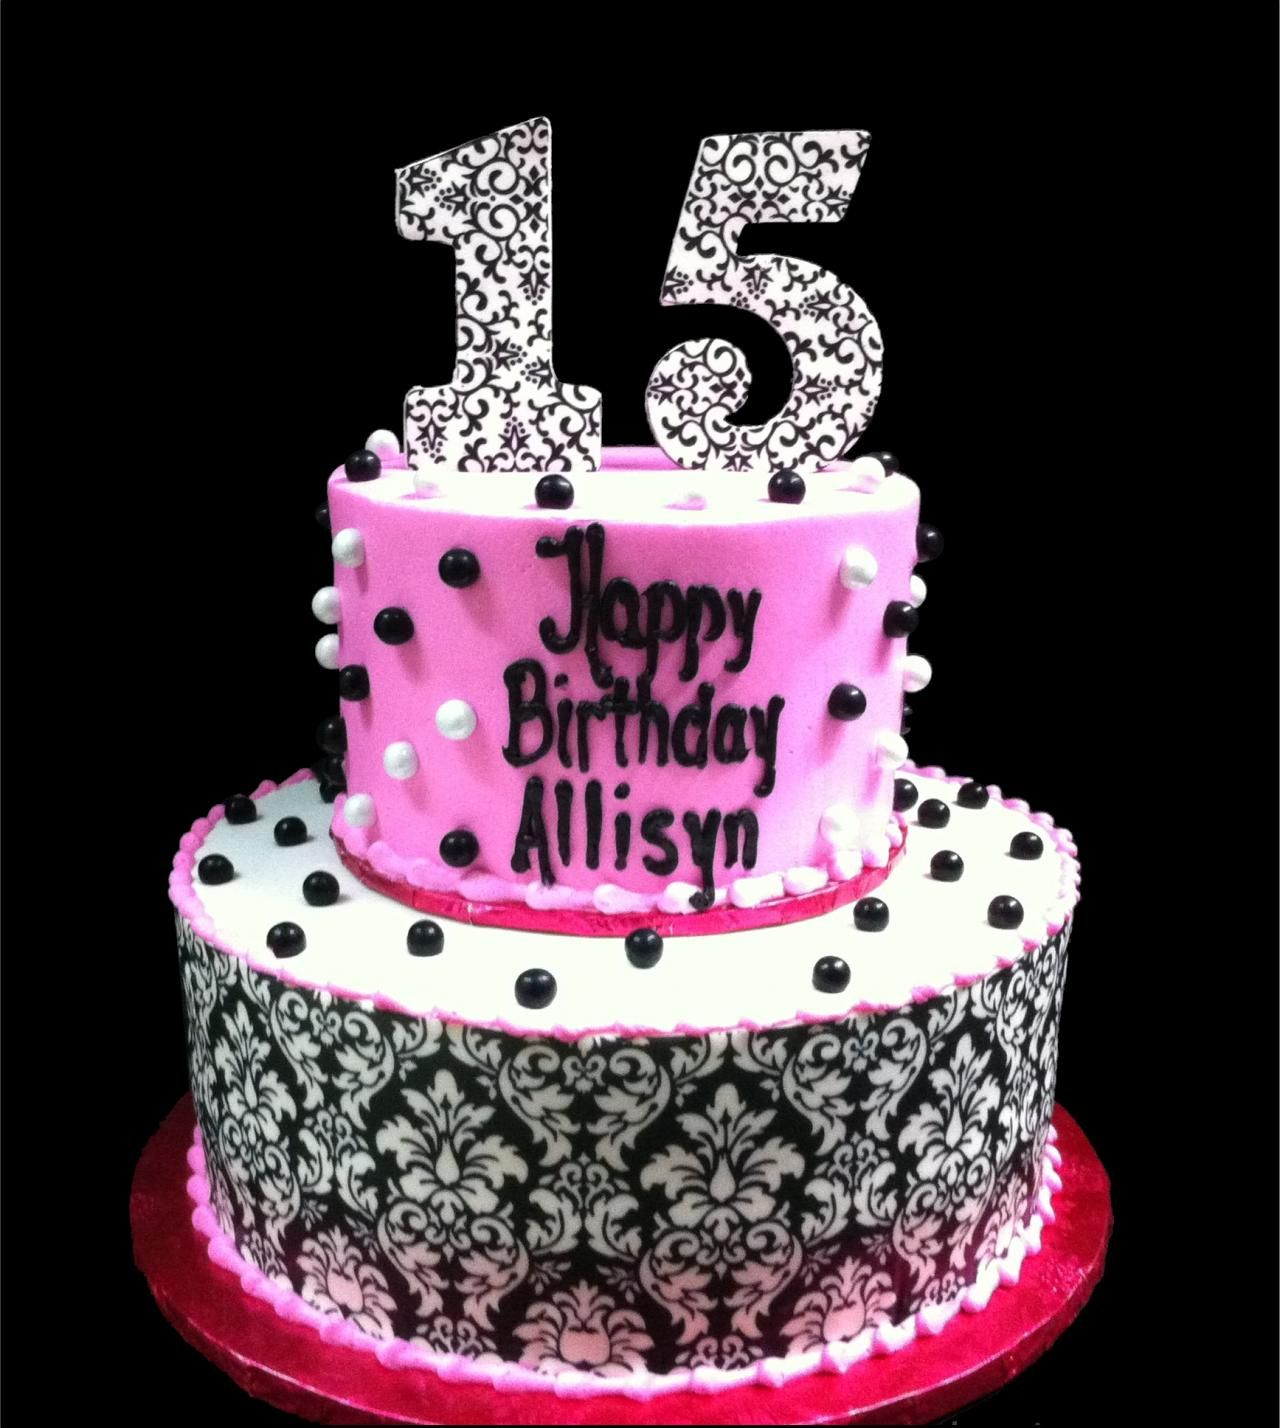 Th Damask Pearl Birthday Cake White And Pink Buttercream Iced - 15 year birthday cake